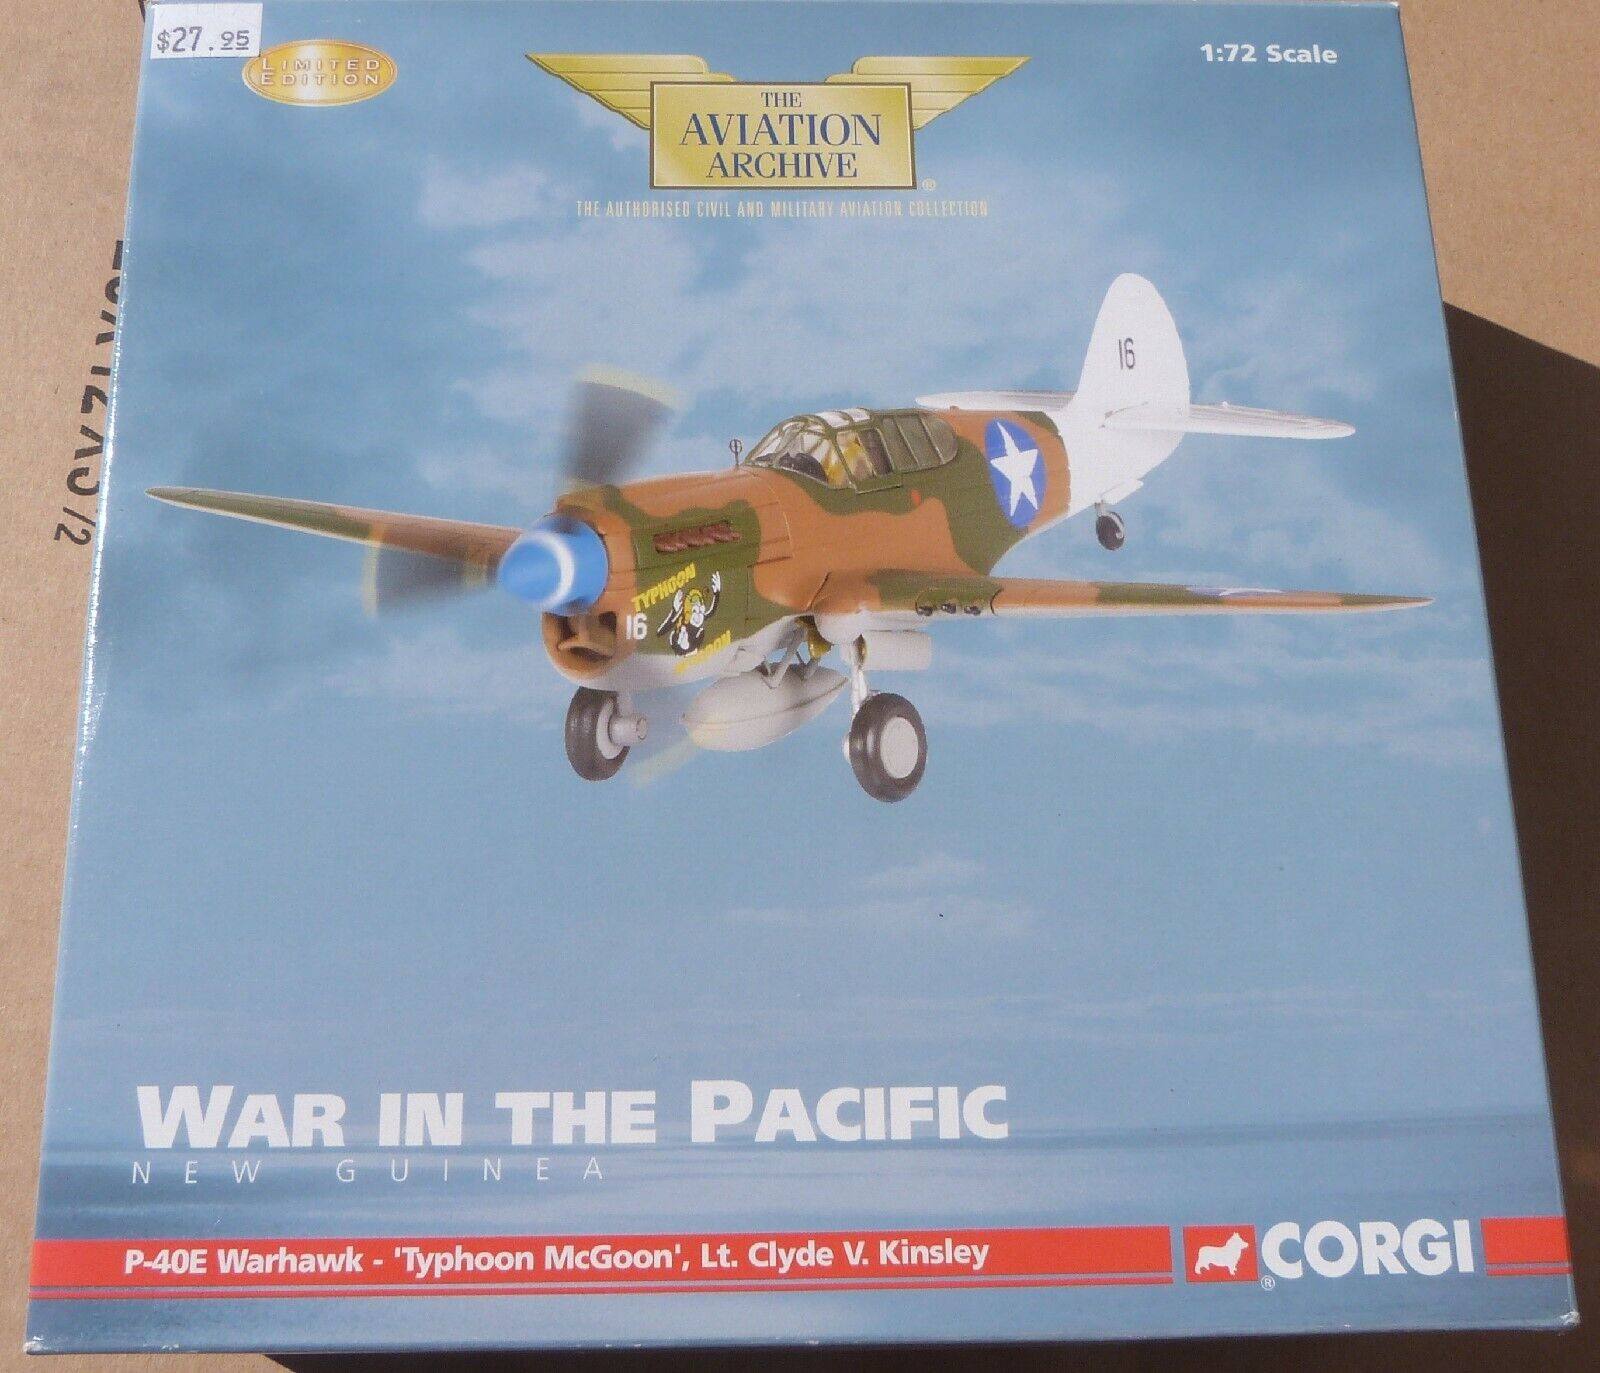 Corgi War in the Pacific P-40E Warhawk 'Typhoon McGoon' diecast plane